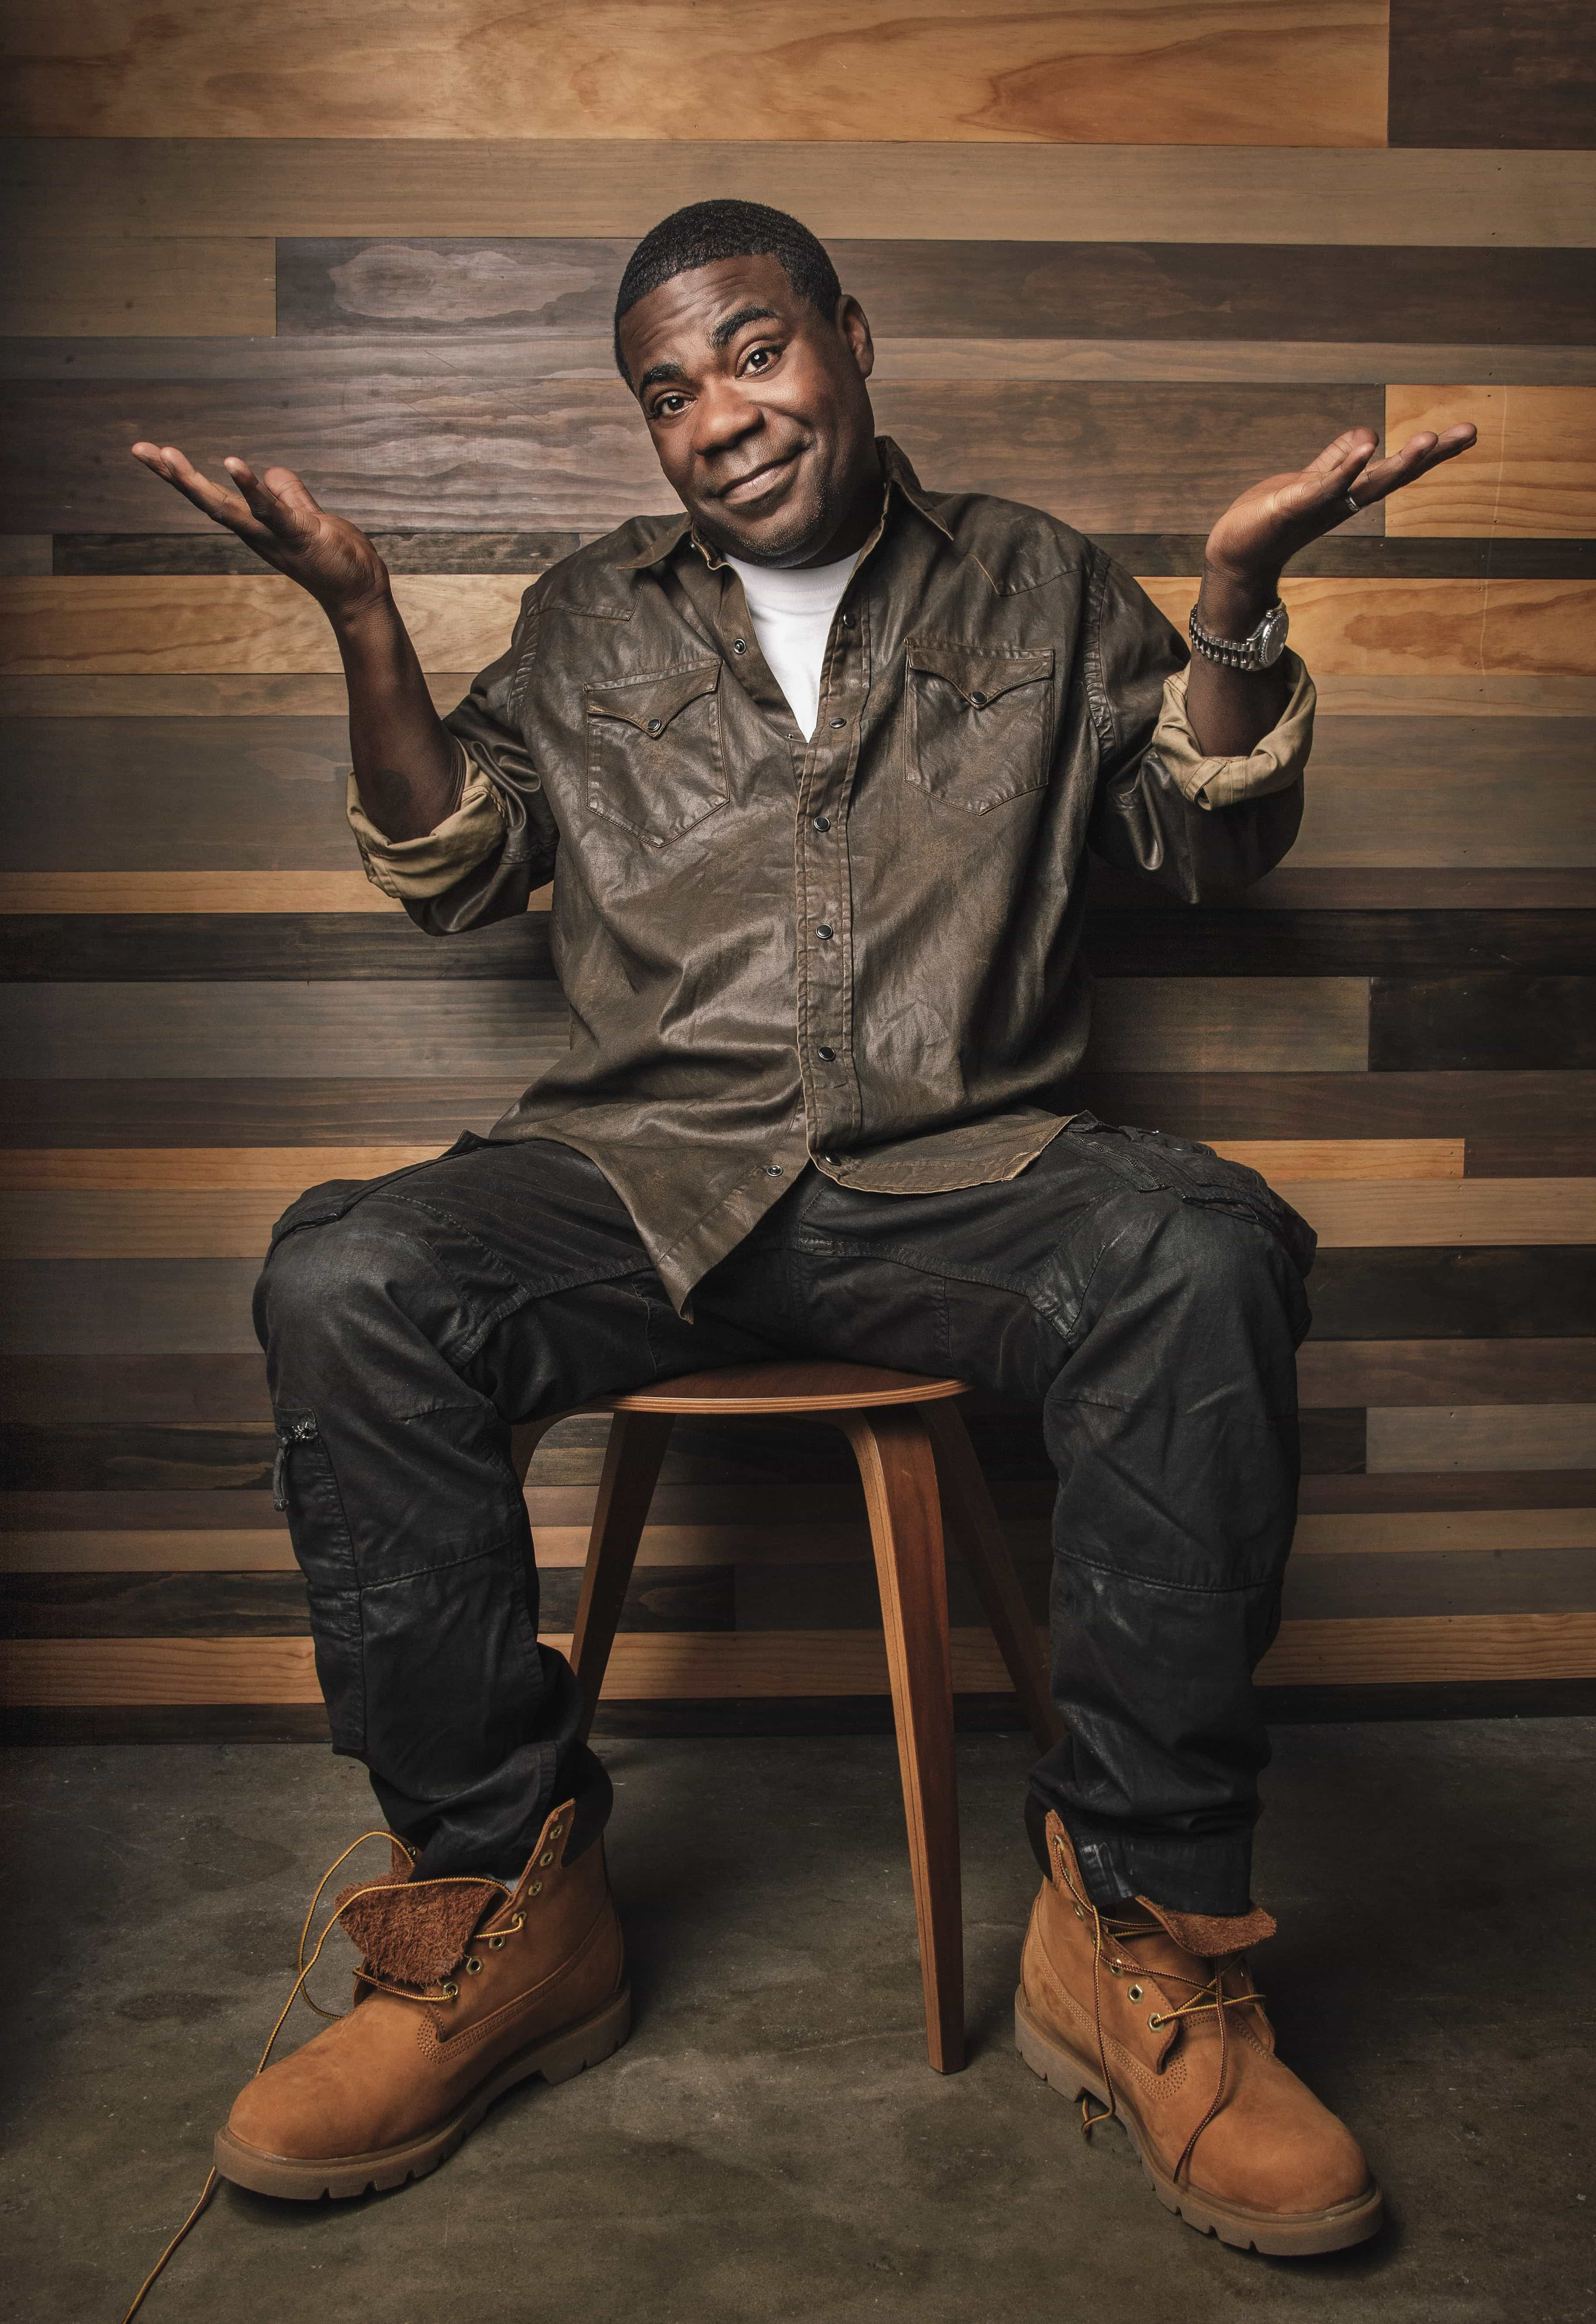 Tracy Morgan. Photo by Paul Mobley.